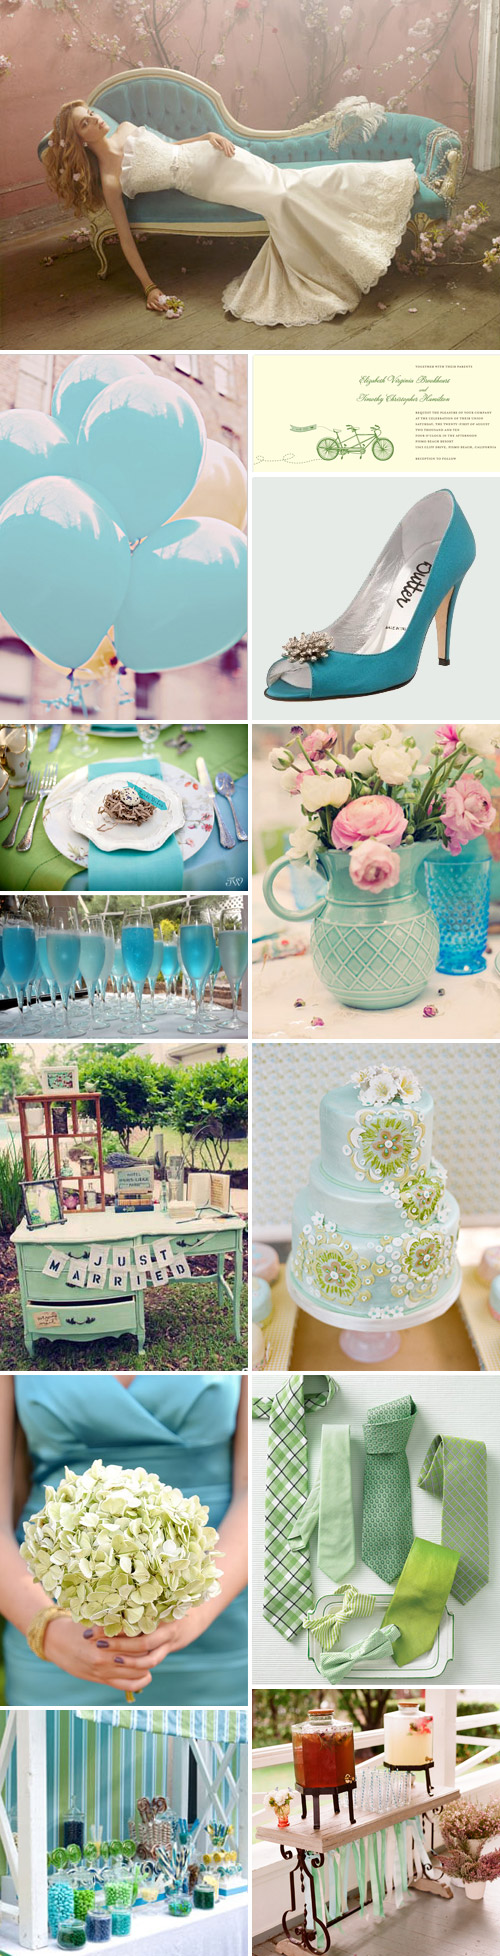 teal-blue-and-green-wedding-inspiration